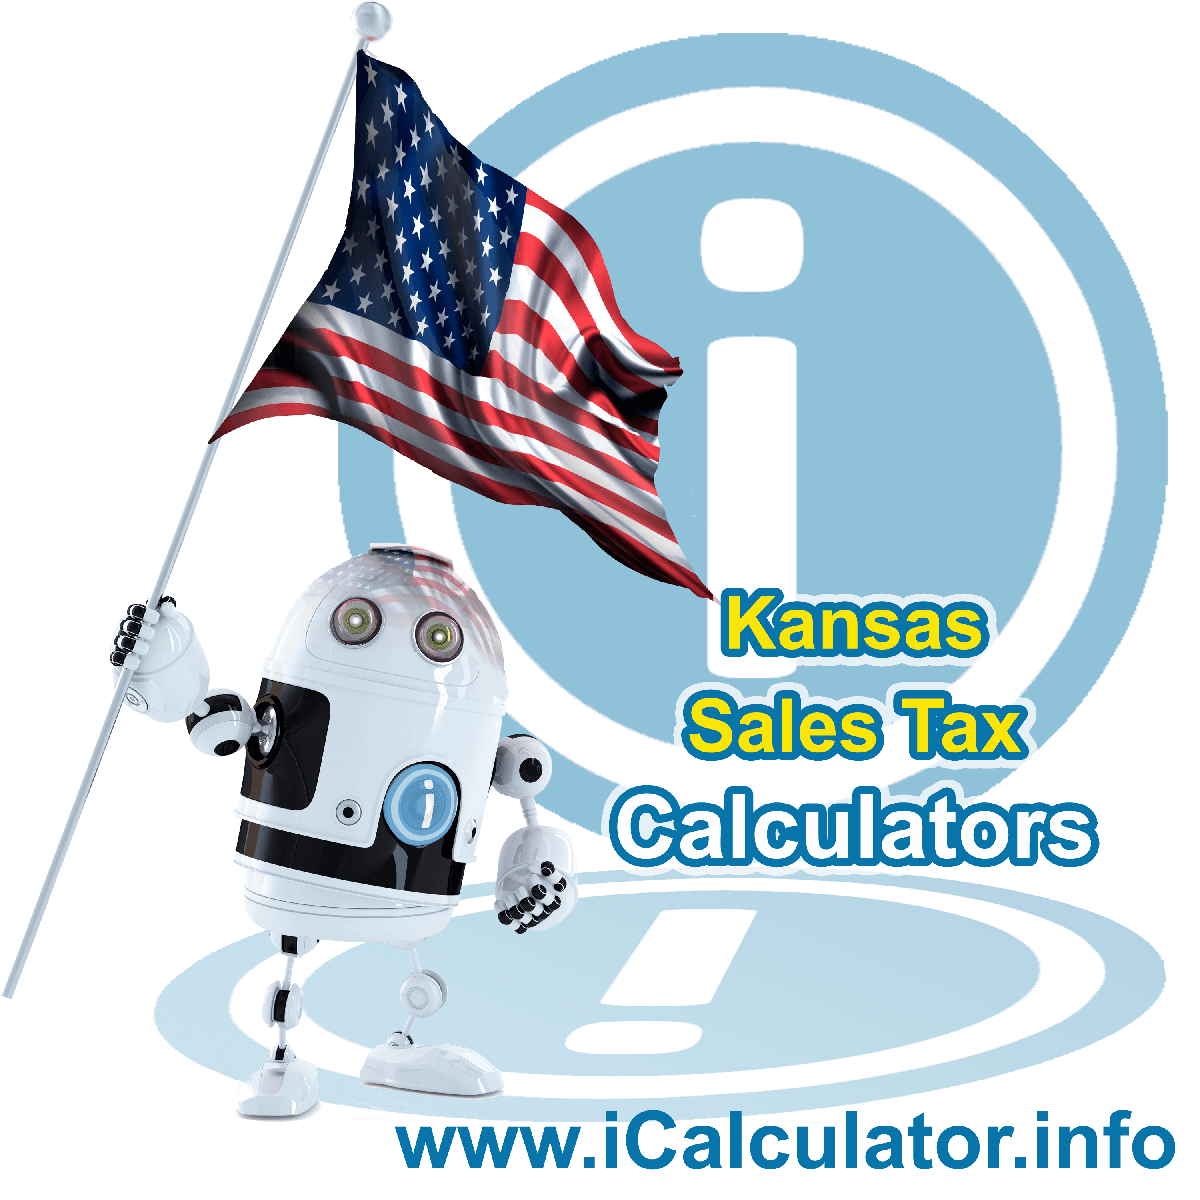 Kansas Sales Tax Comparison Calculator: This image illustrates a calculator robot comparing sales tax in Kansas manually using the Kansas Sales Tax Formula. You can use this information to compare Sales Tax manually or use the Kansas Sales Tax Comparison Calculator to calculate and compare Kansas sales tax online.